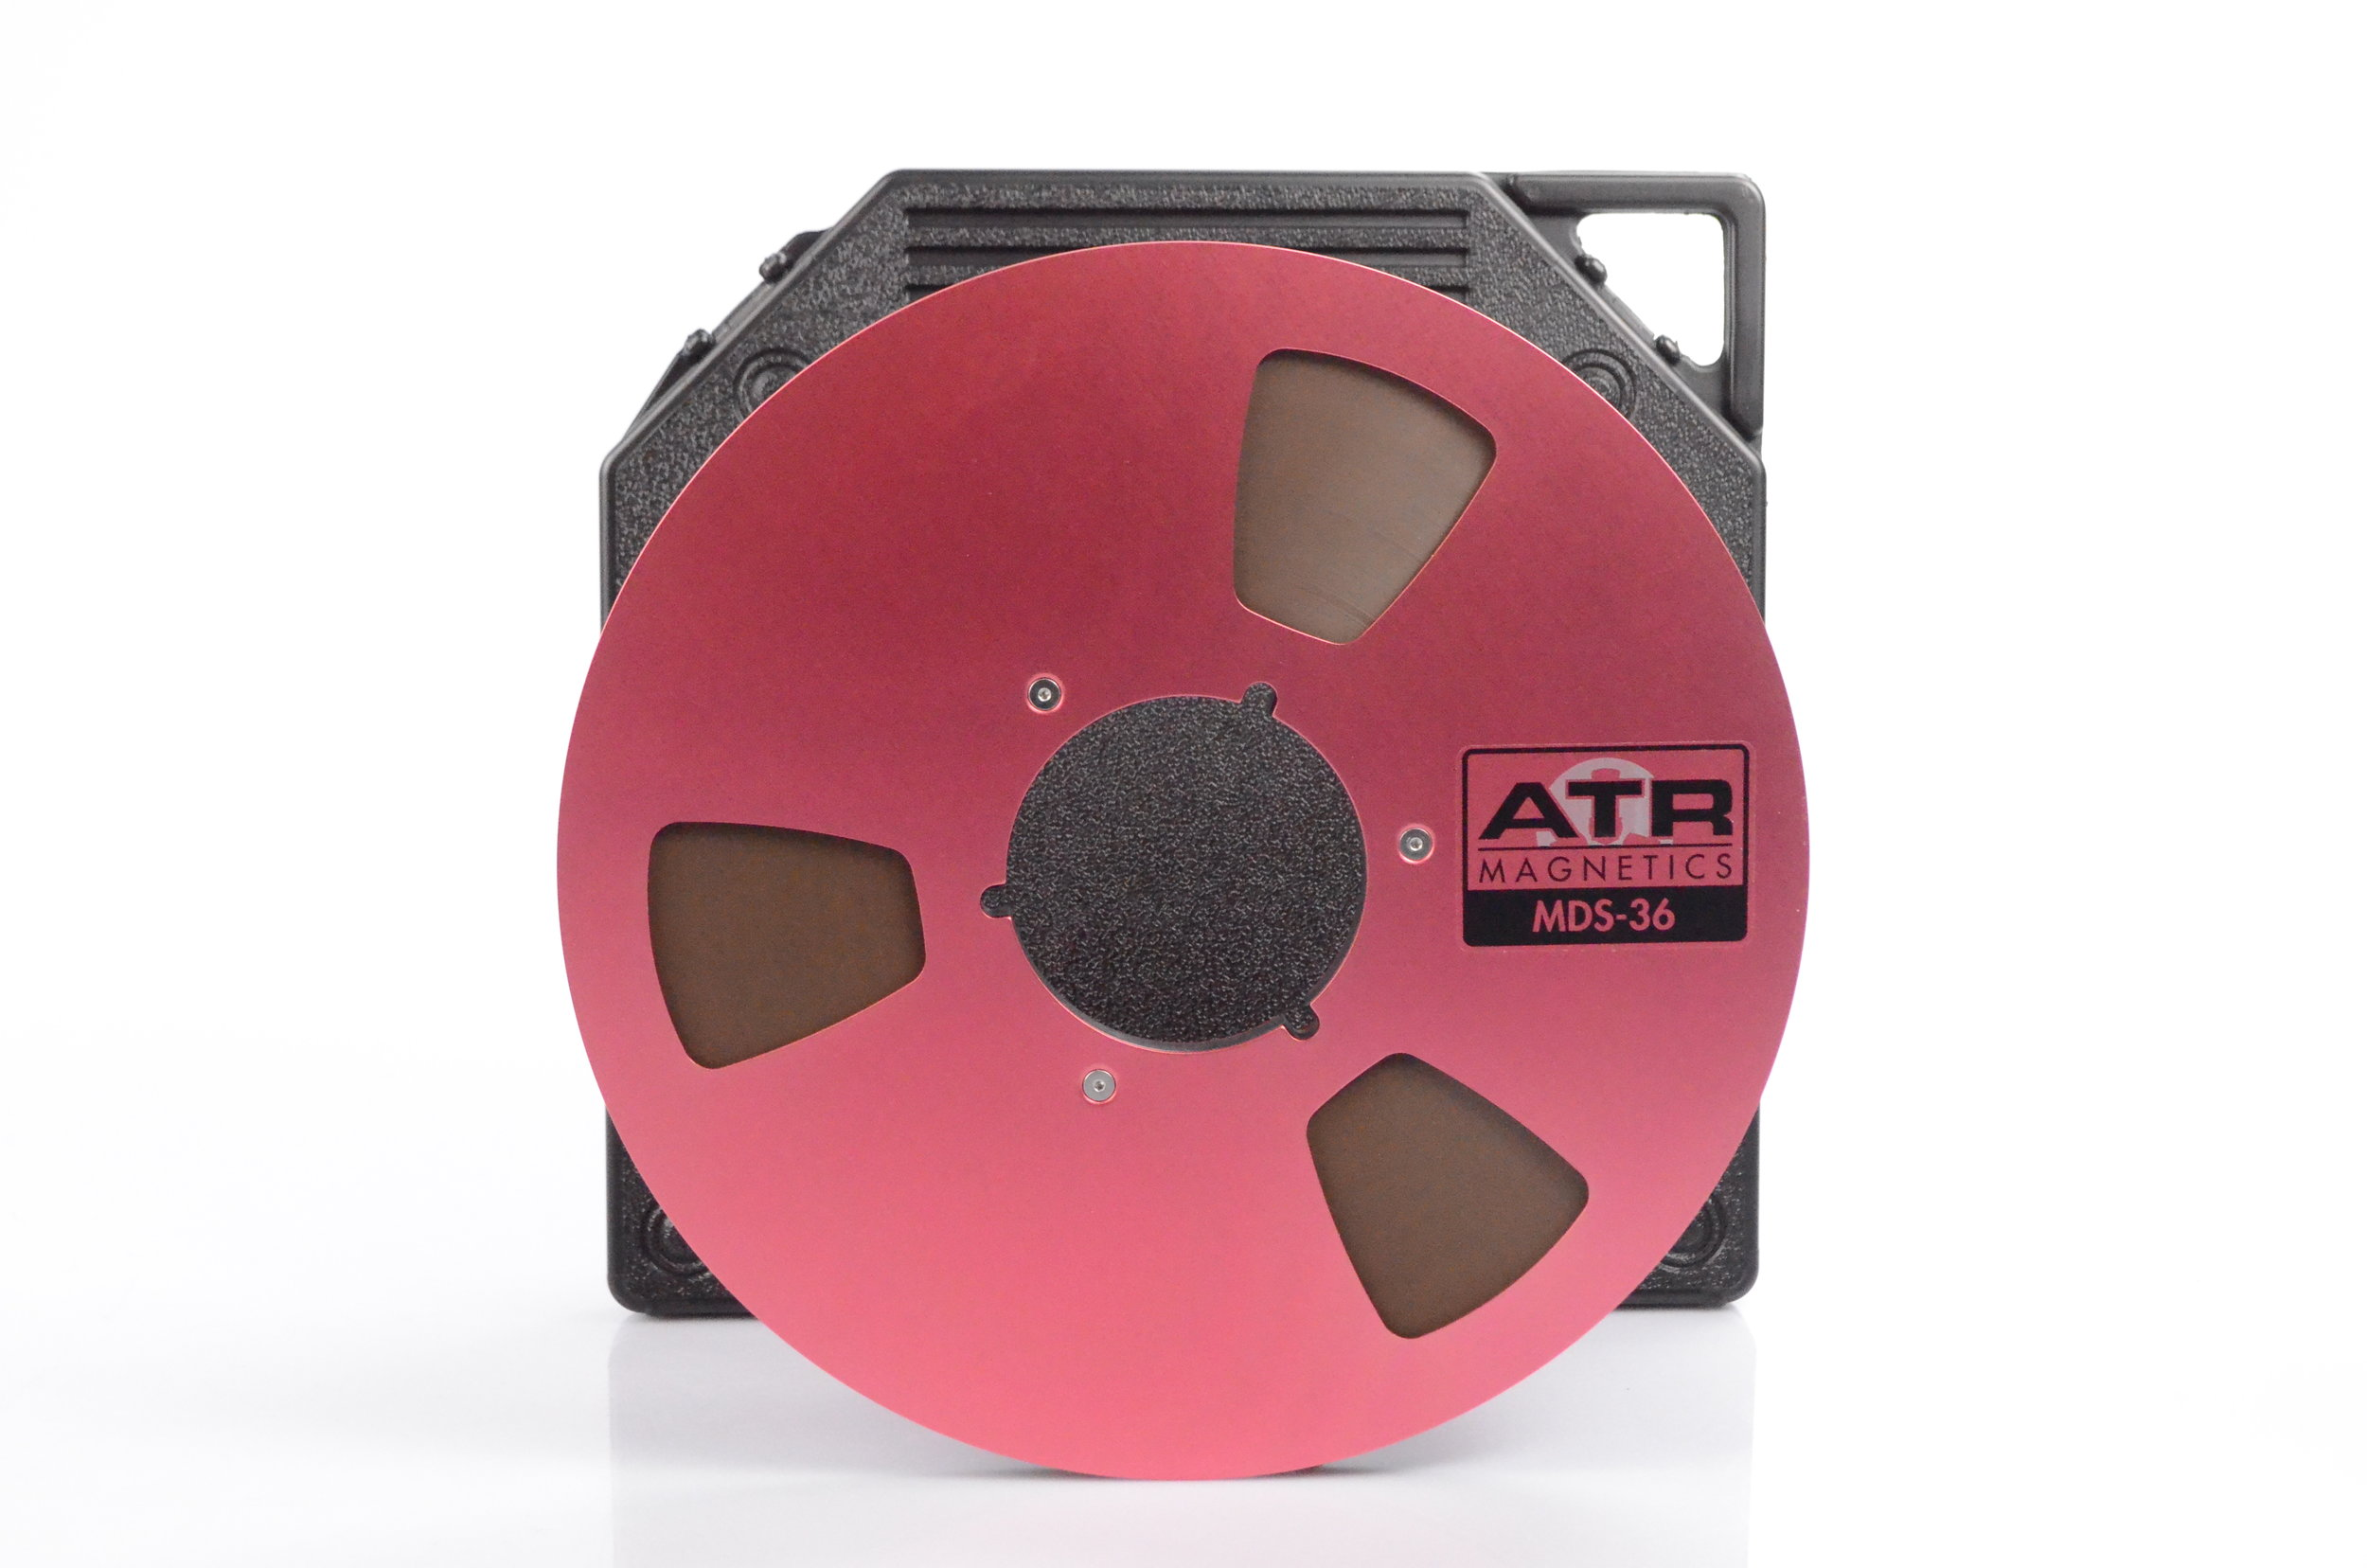 ATR MDR36 reel to reel long playing recording tape on red reels